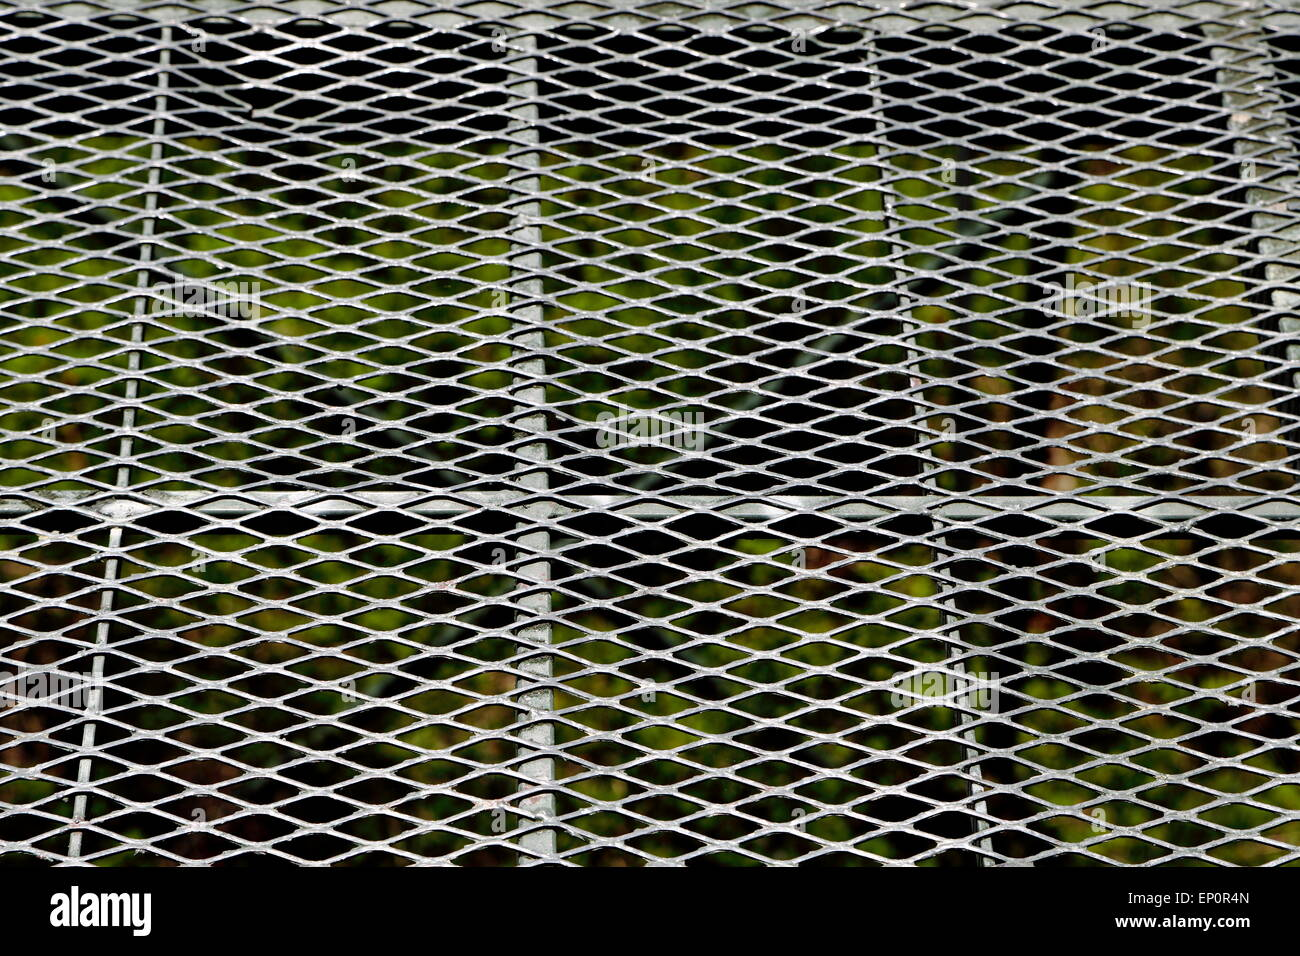 Old Wire Mesh Fence Stock Photos Amp Old Wire Mesh Fence